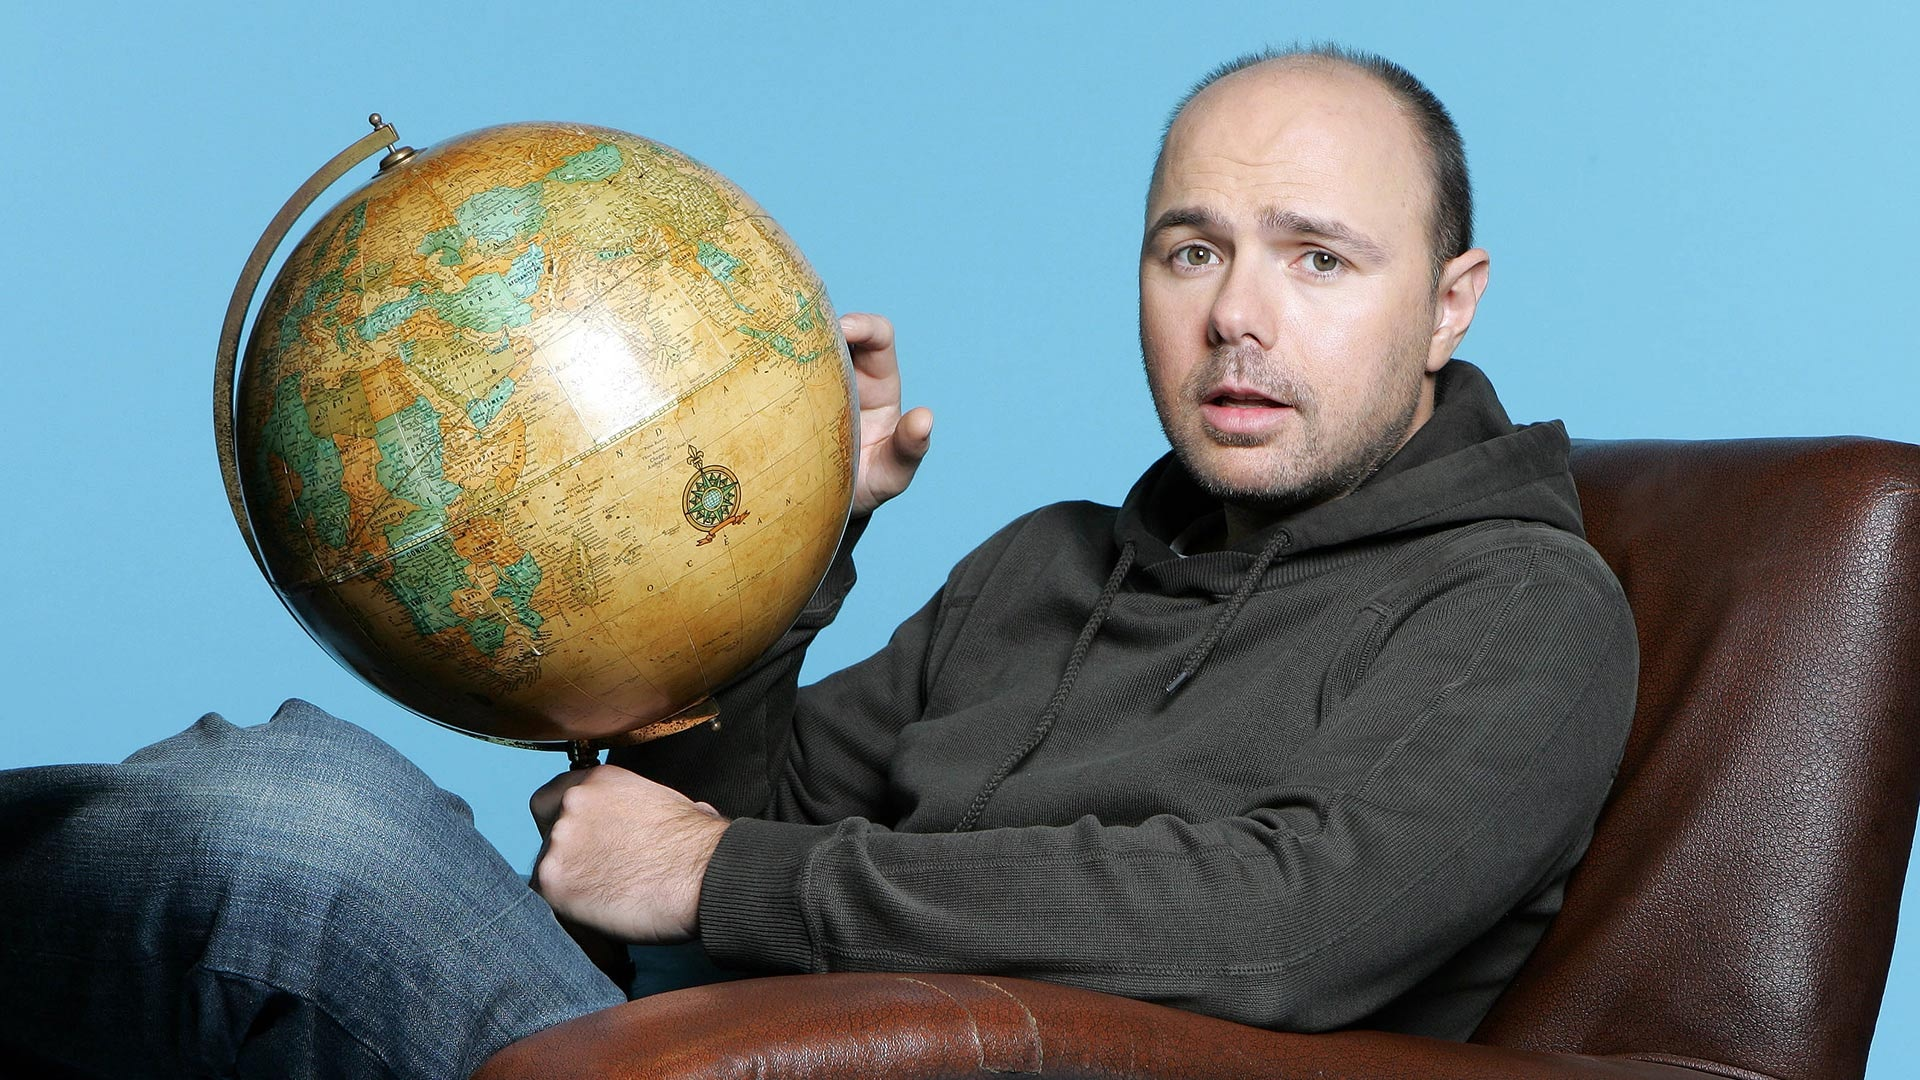 An Idiot Abroad: Karl Comes Home